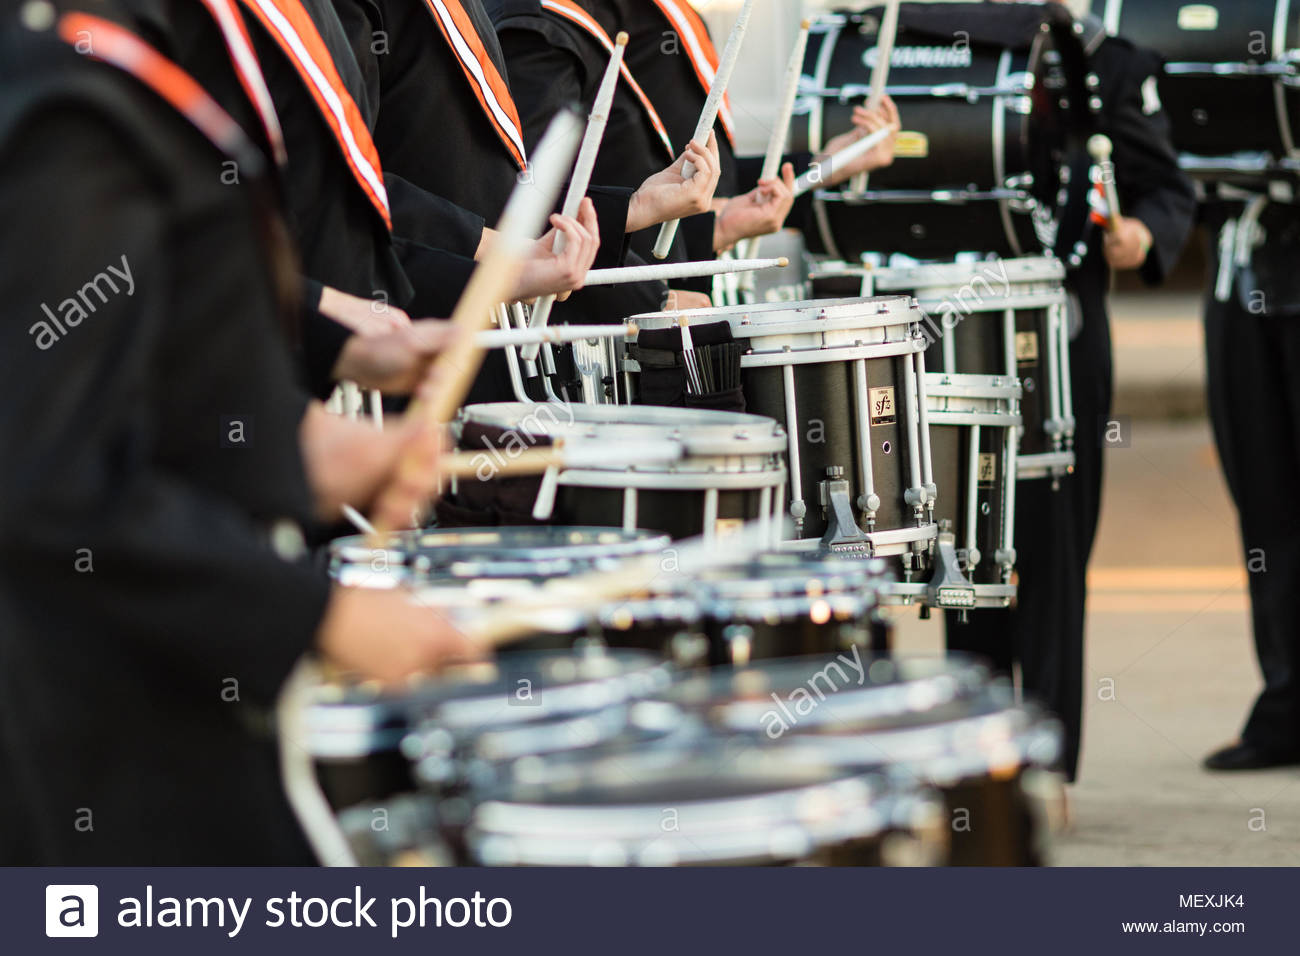 Drum Line Drummer Stock Photos Drum Line Drummer Stock Images 1300x956